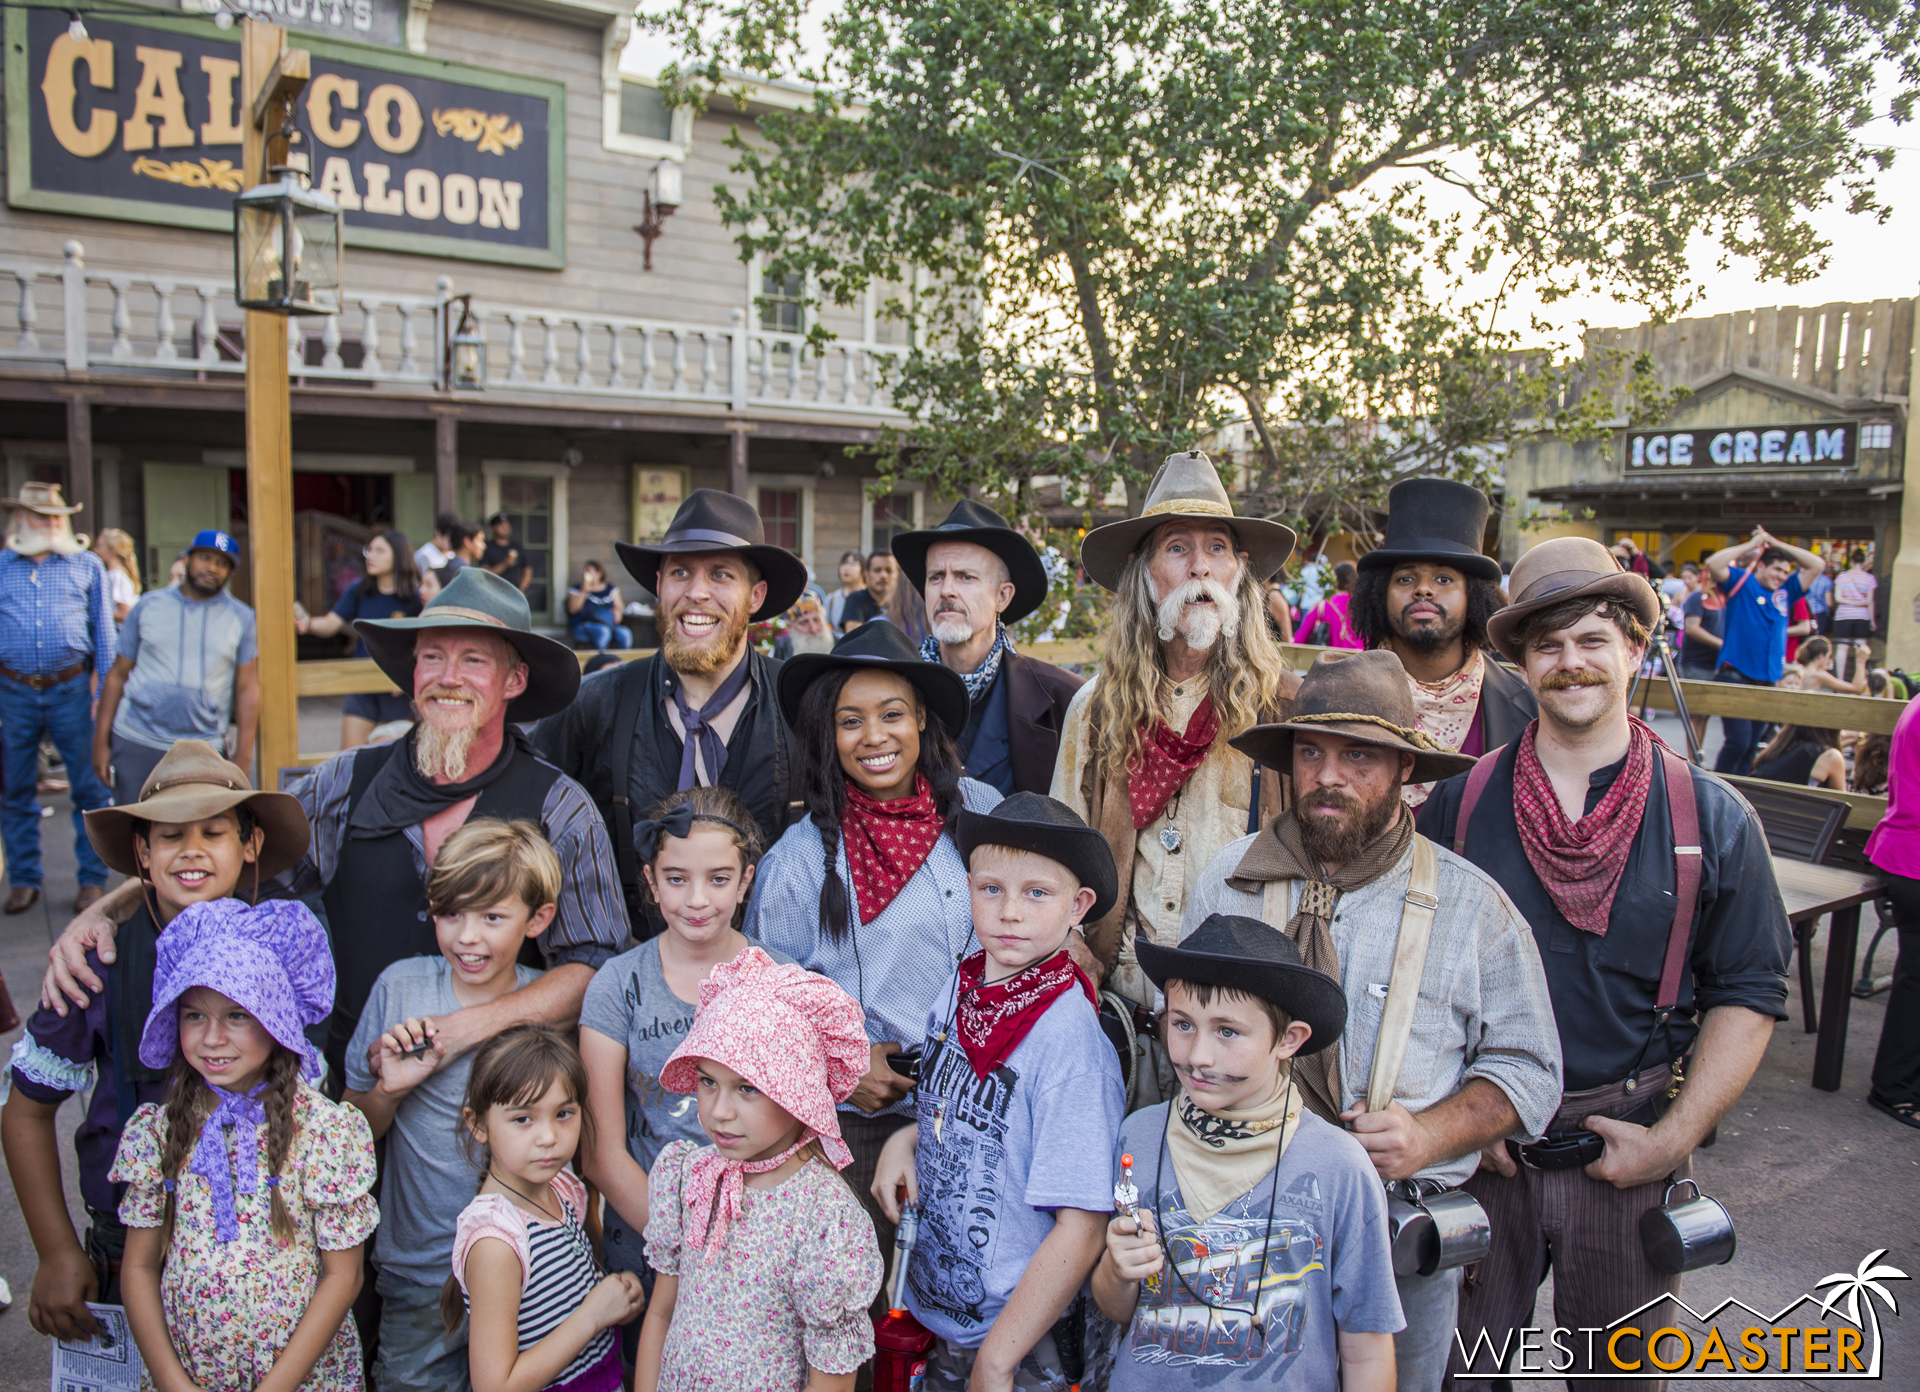 The Mayfield Gang (including newly discovered member Dillard Marsh) pose for a group photo with guests.